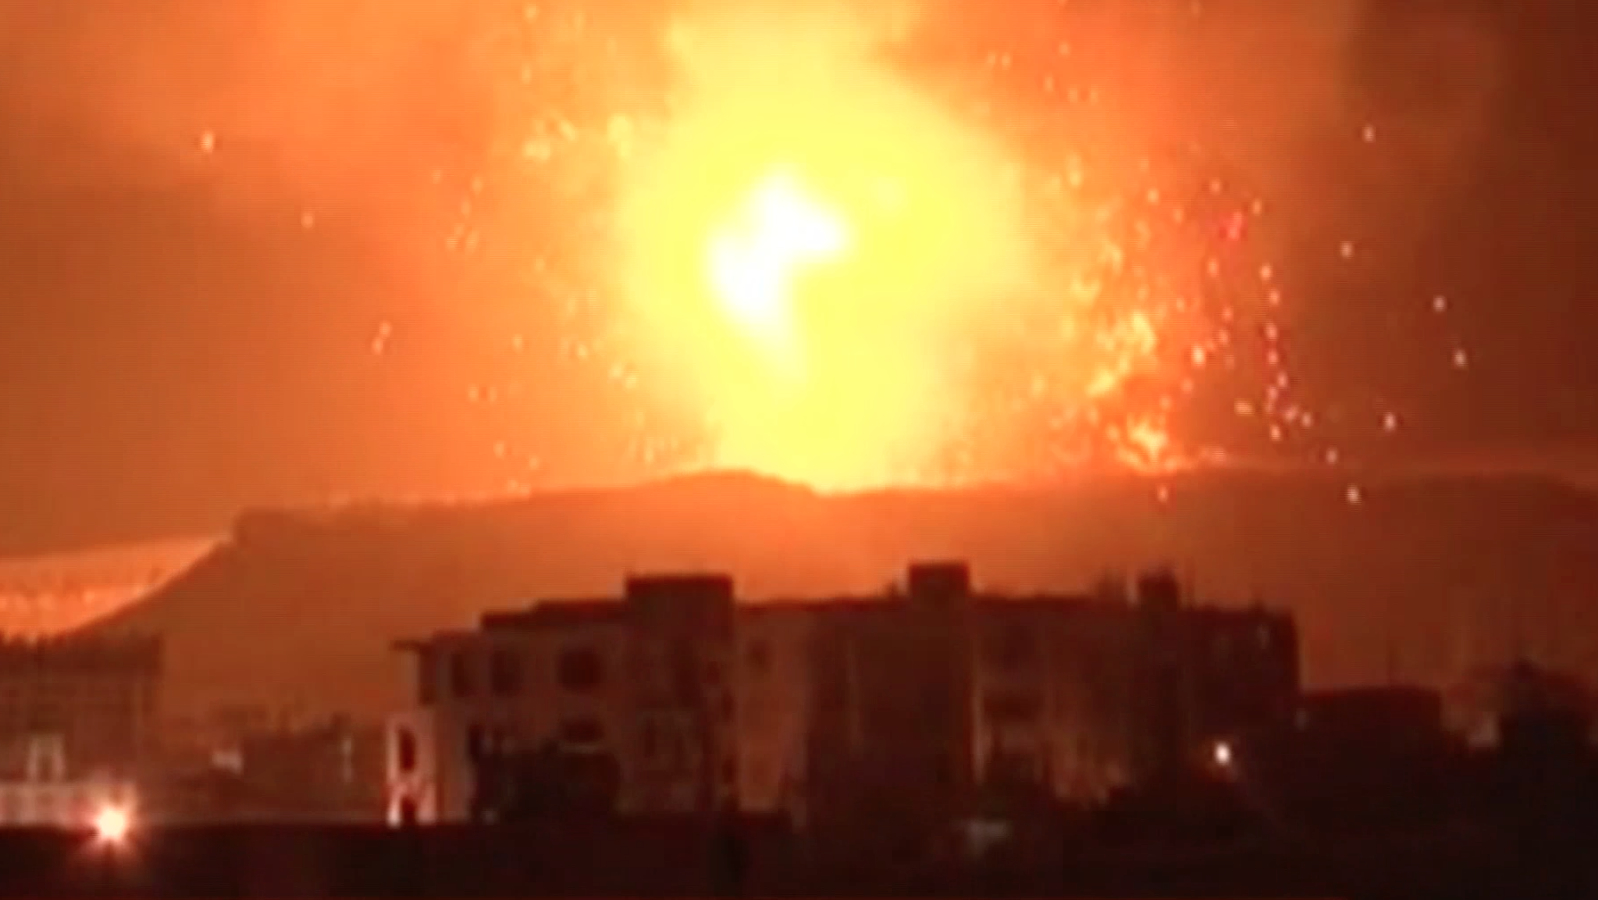 Airstrikes over the Yemen capital of Sana'a.